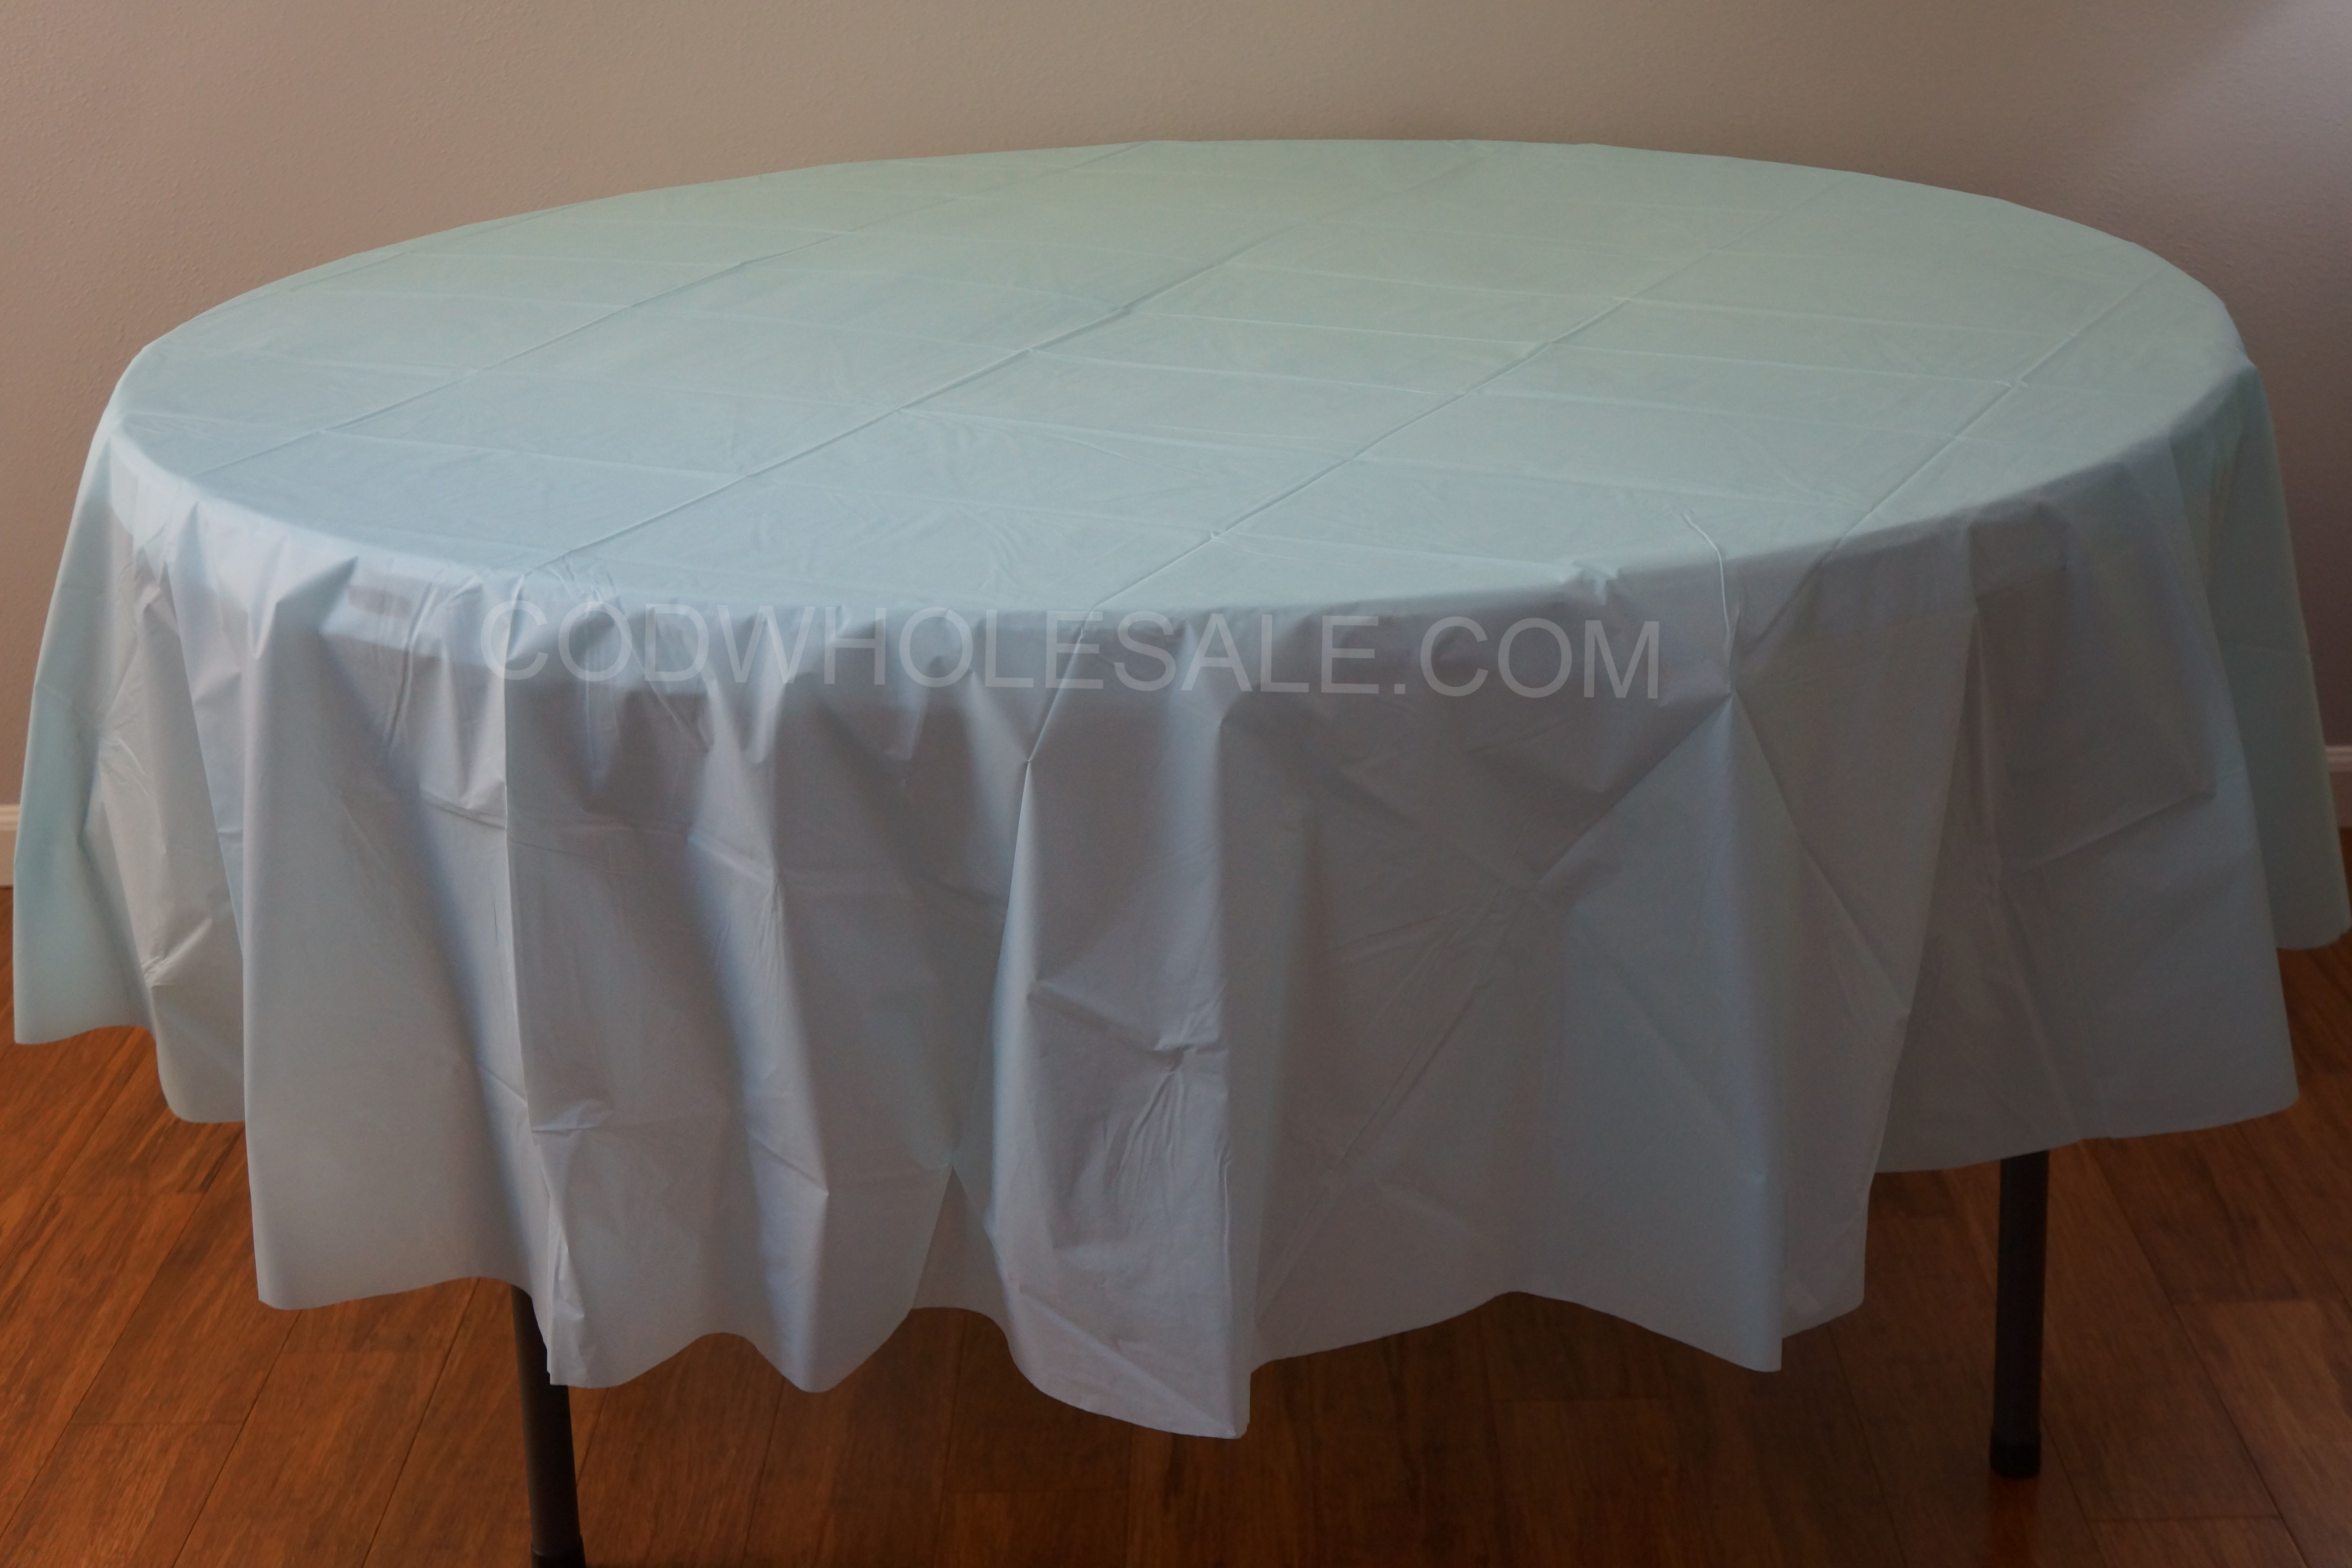 Pin On Plastic Tablecloths